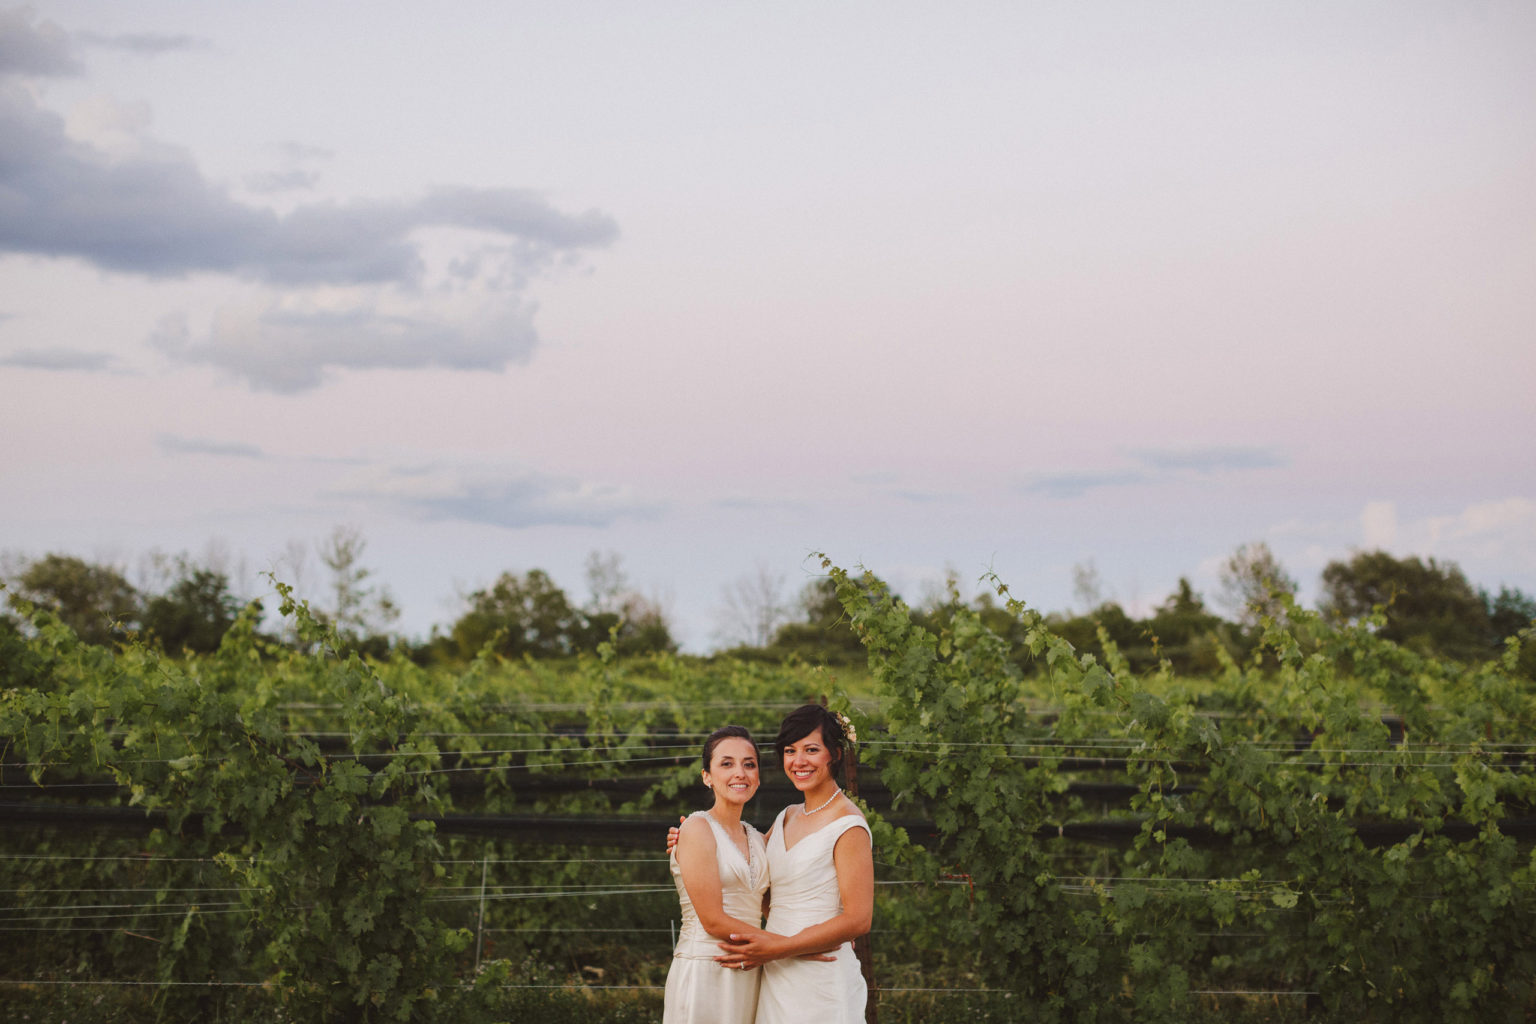 southbrook winery wedding niagara on the lake lgbtq photographer